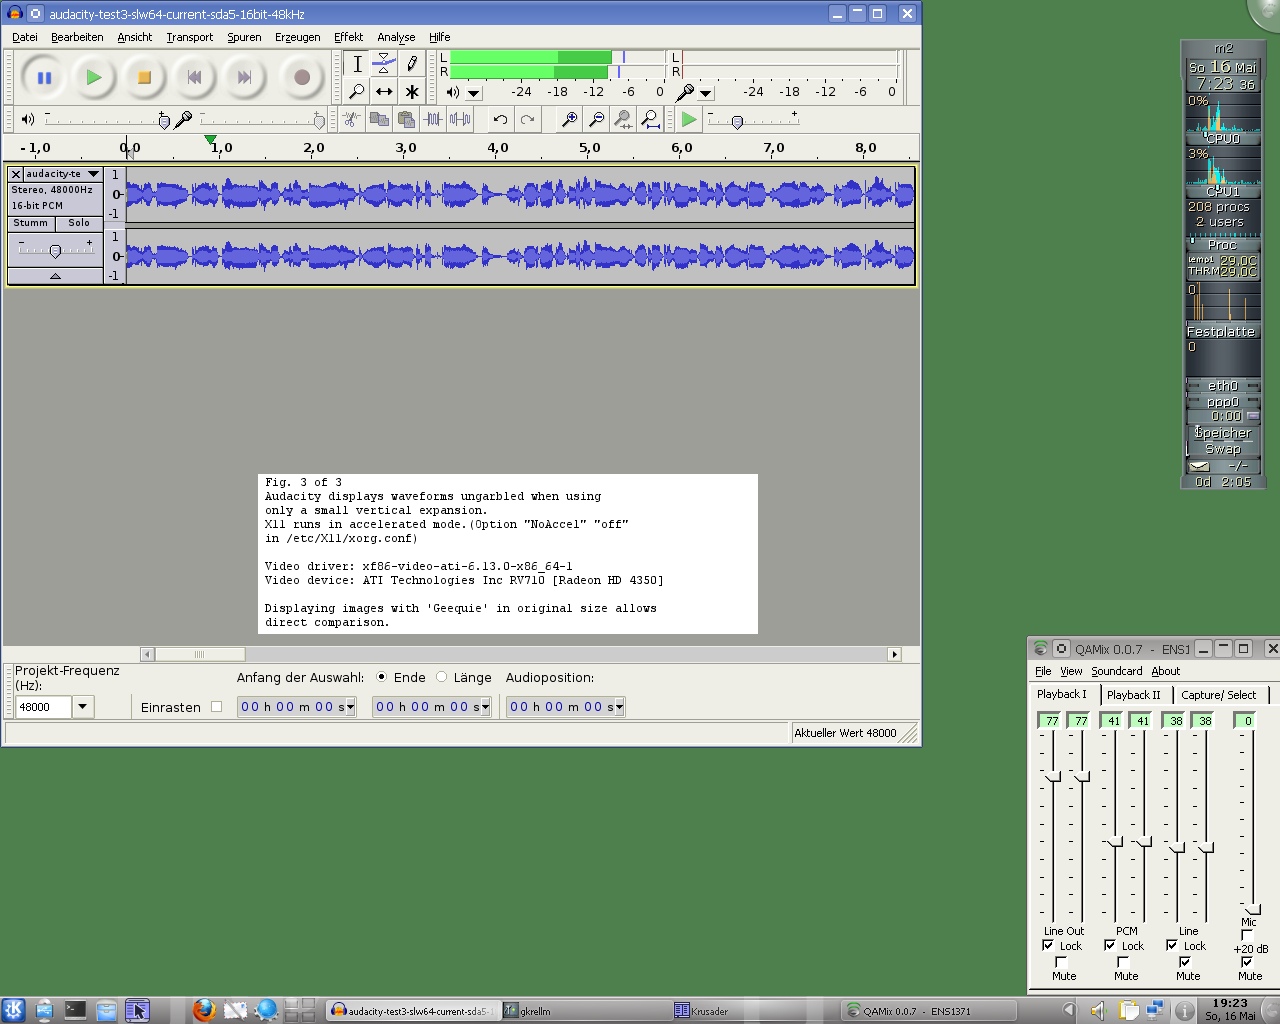 Click image for larger version  Name:fig3of3-audacity-waveforms-small-vertical-size.png Views:25 Size:133.1 KB ID:3586